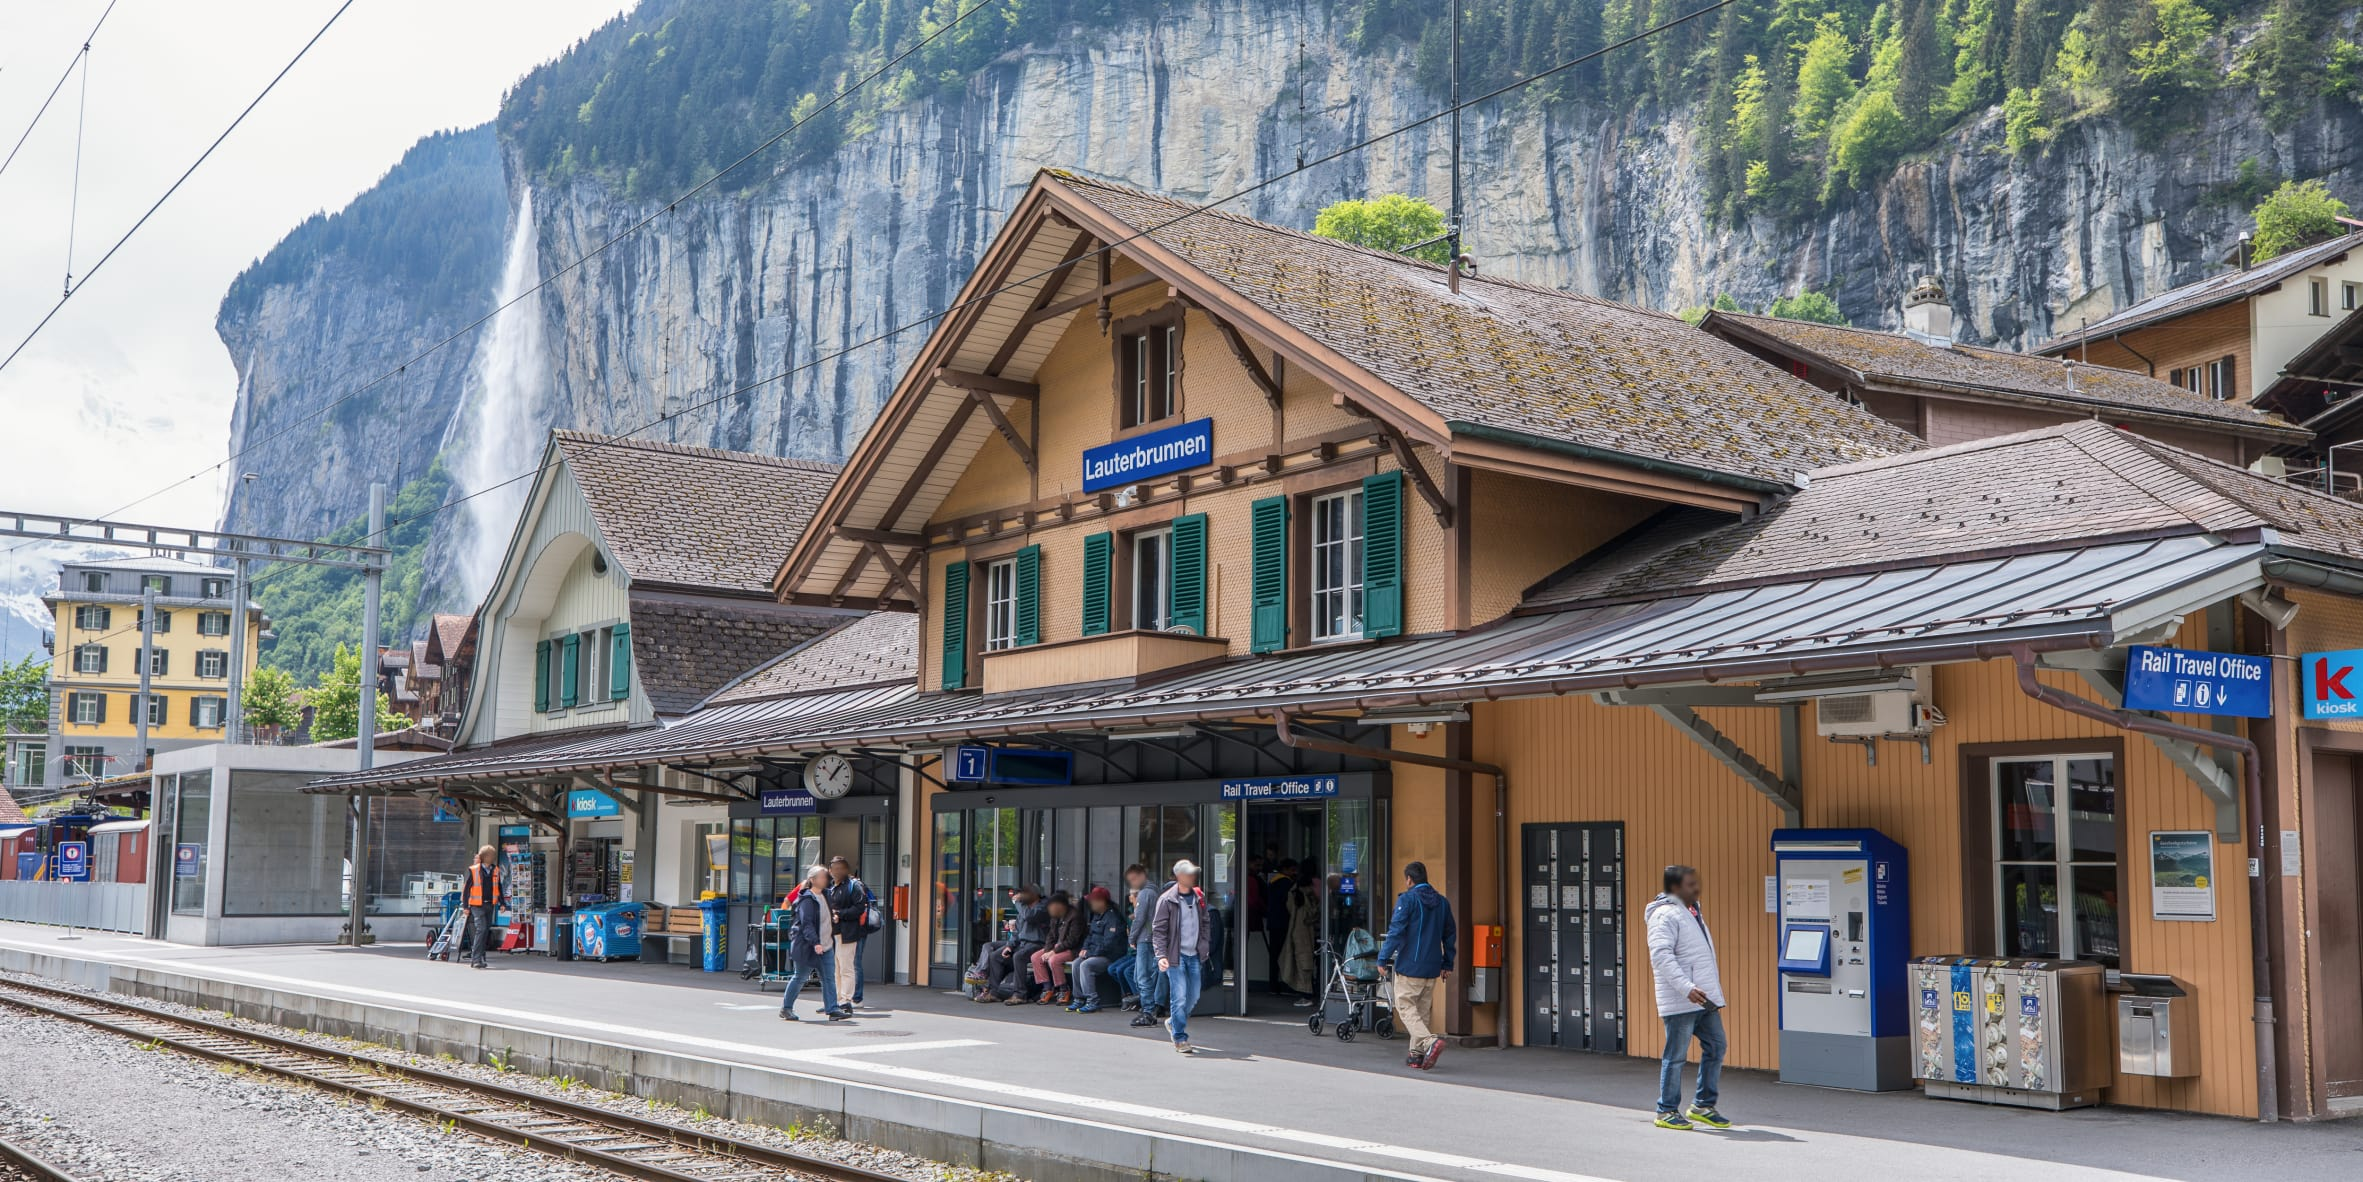 [Translate to English:] Bahnhof Lauterbrunnen